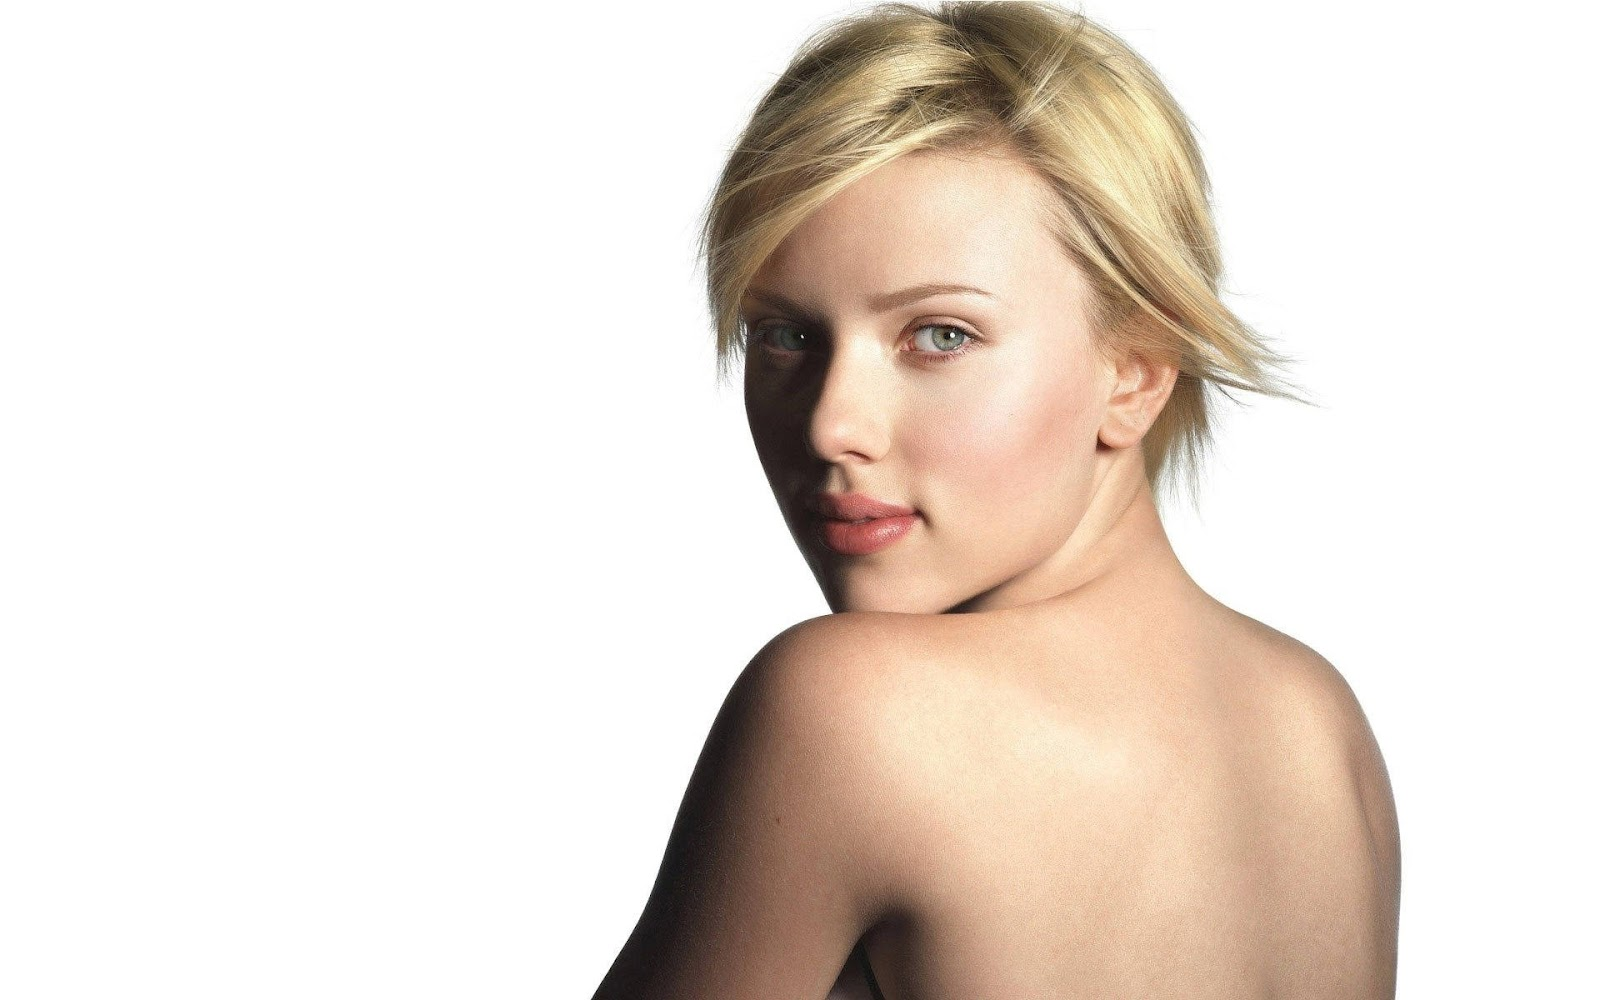 Scarlett Johansson Wallpaper: Wdescreen Scarlett Johansson Cute Wallpapers